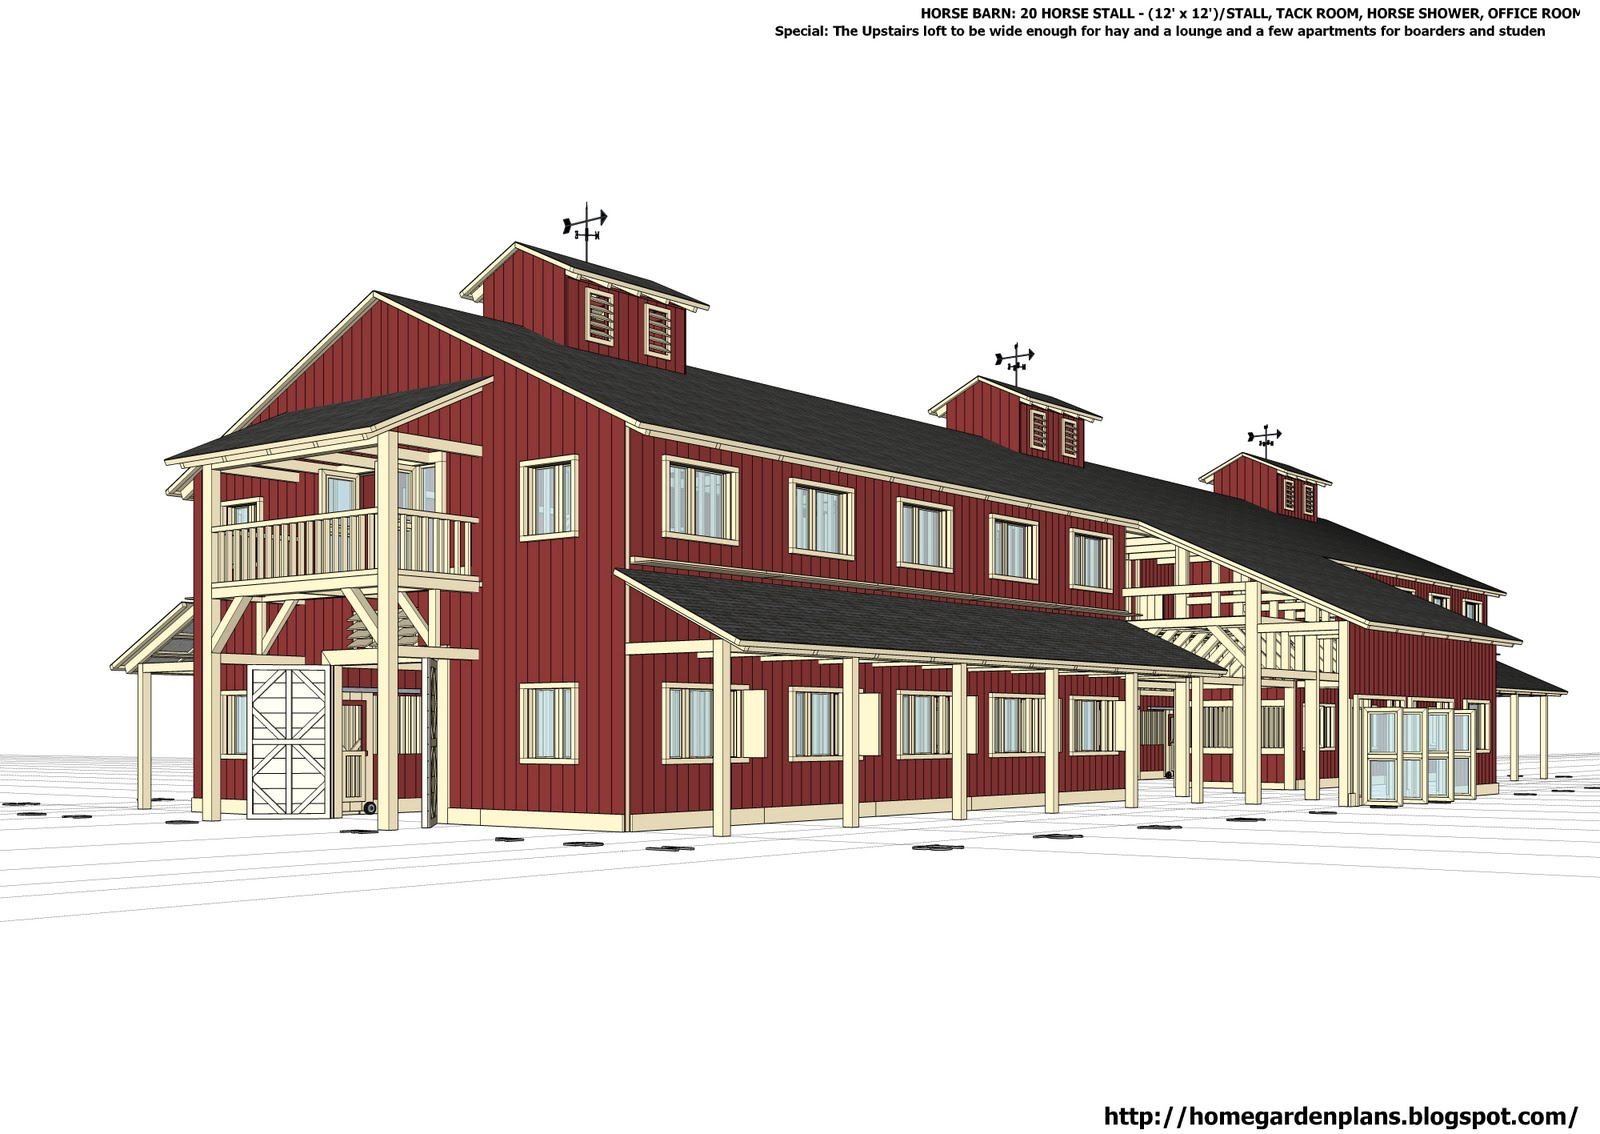 82 2 horse barn ideas 2 stall horse barn plan with loft for Horse barn with apartment plans